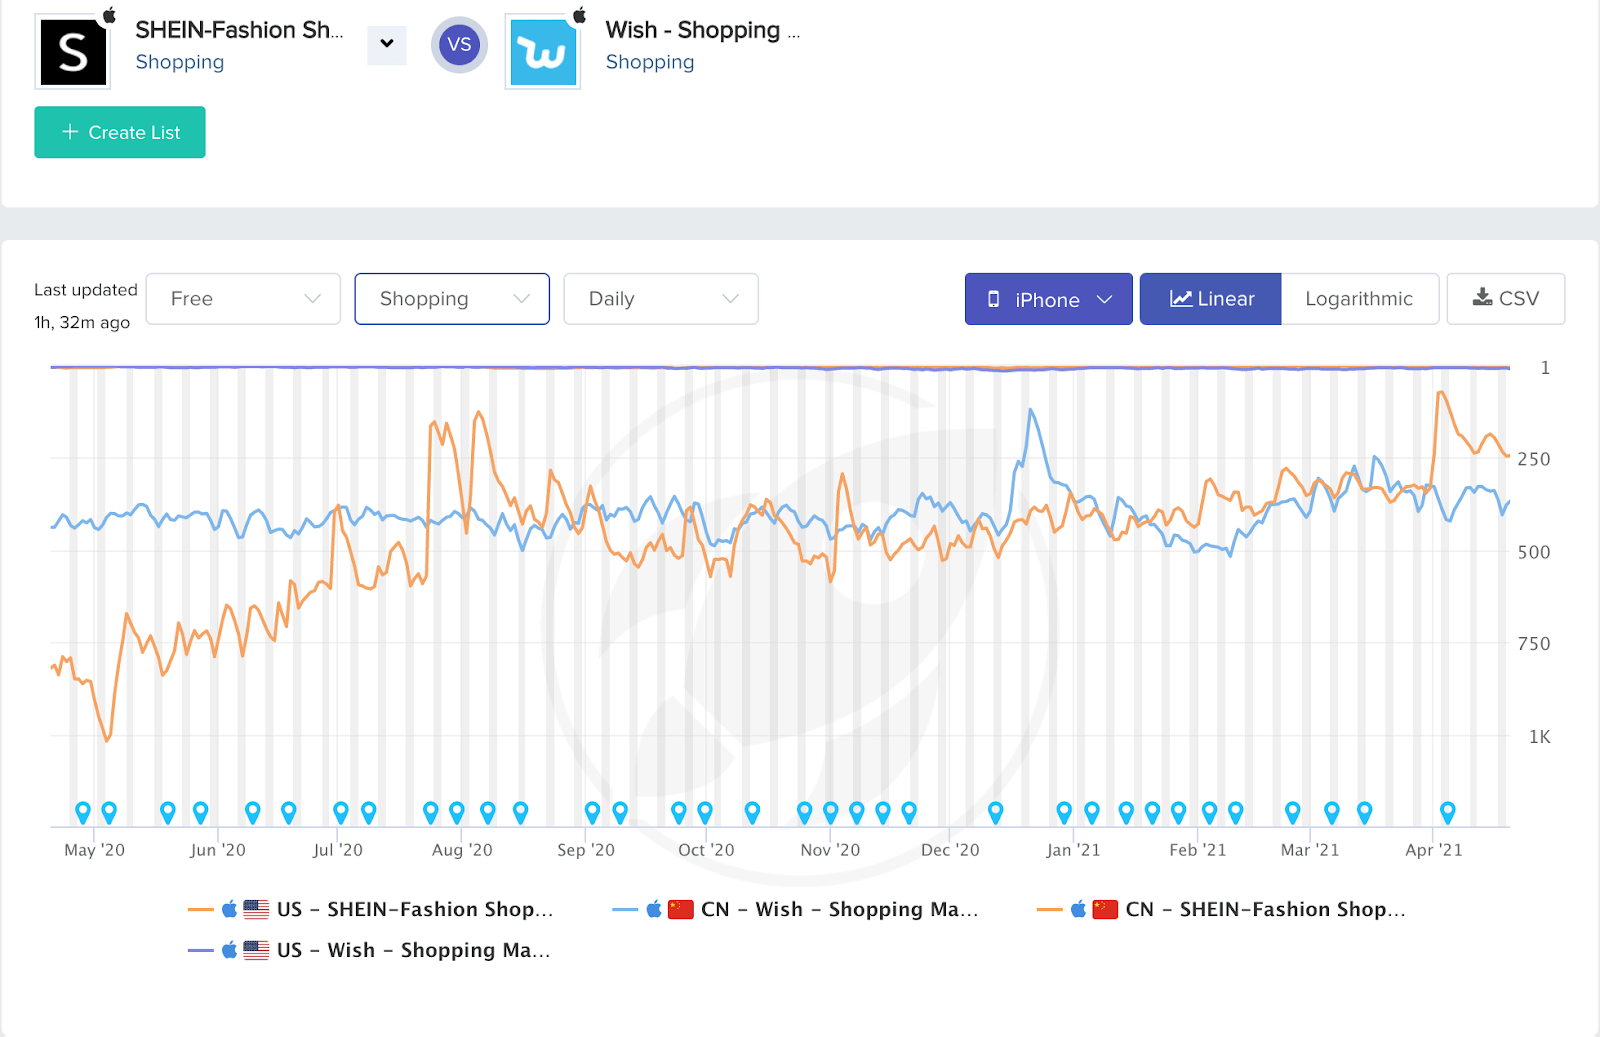 Top 10 Shopping Apps March 2021 SHEIN vs Wish category rankings